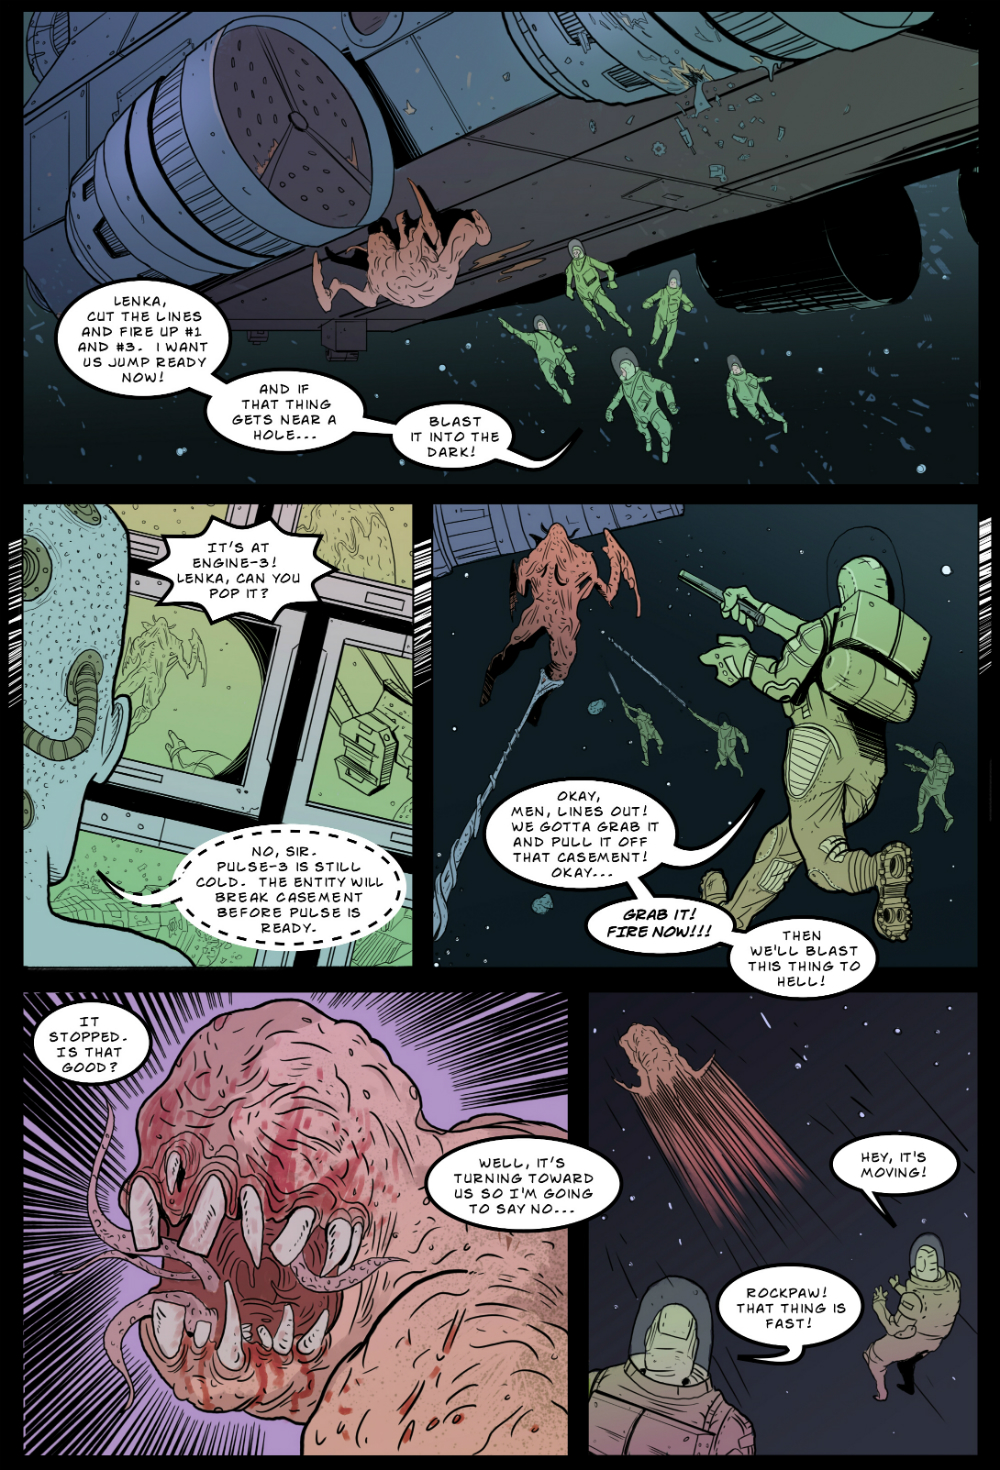 IN SPACE page 5 -- story 24 in THE BOOK OF LIES